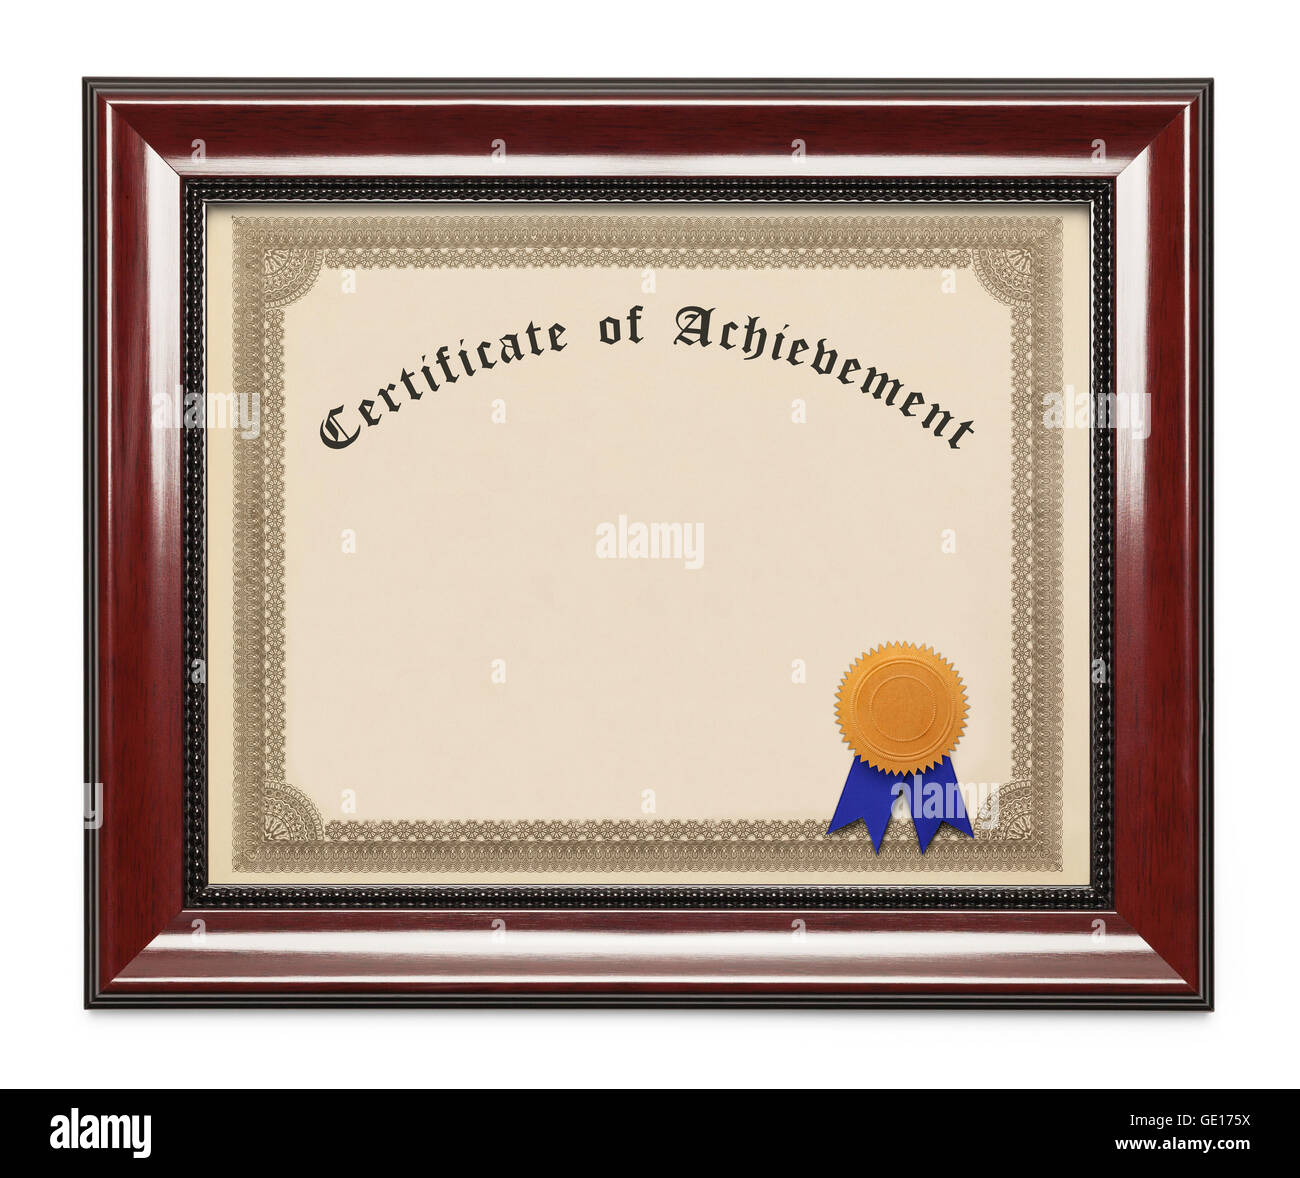 Framed Certificate of Achievement with Copy Space Isolated on White Background. - Stock Image